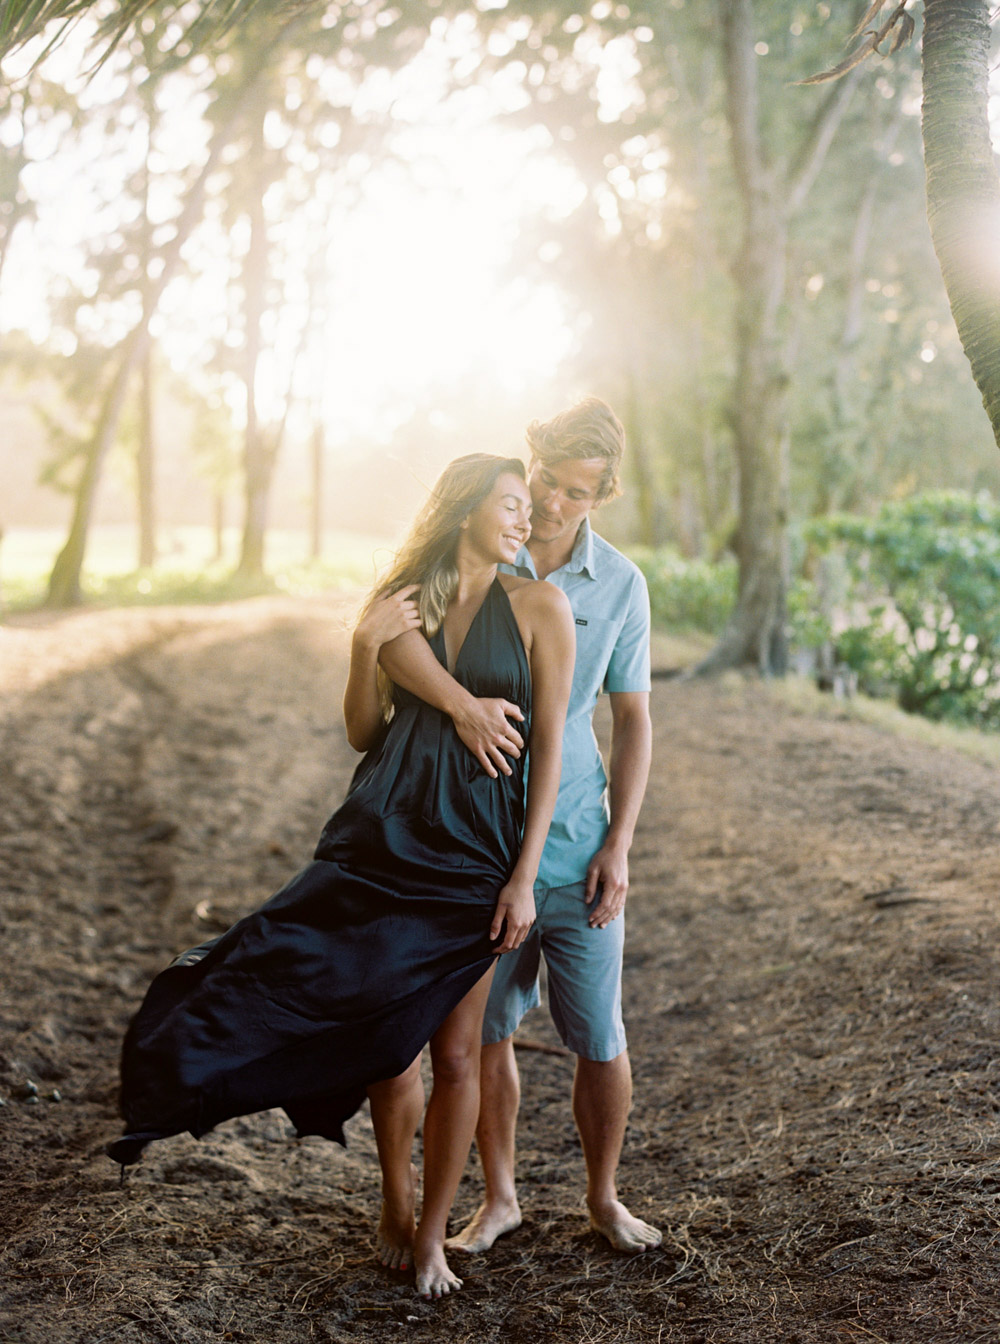 Oahu Engagement Session at Turtle Bay Resort